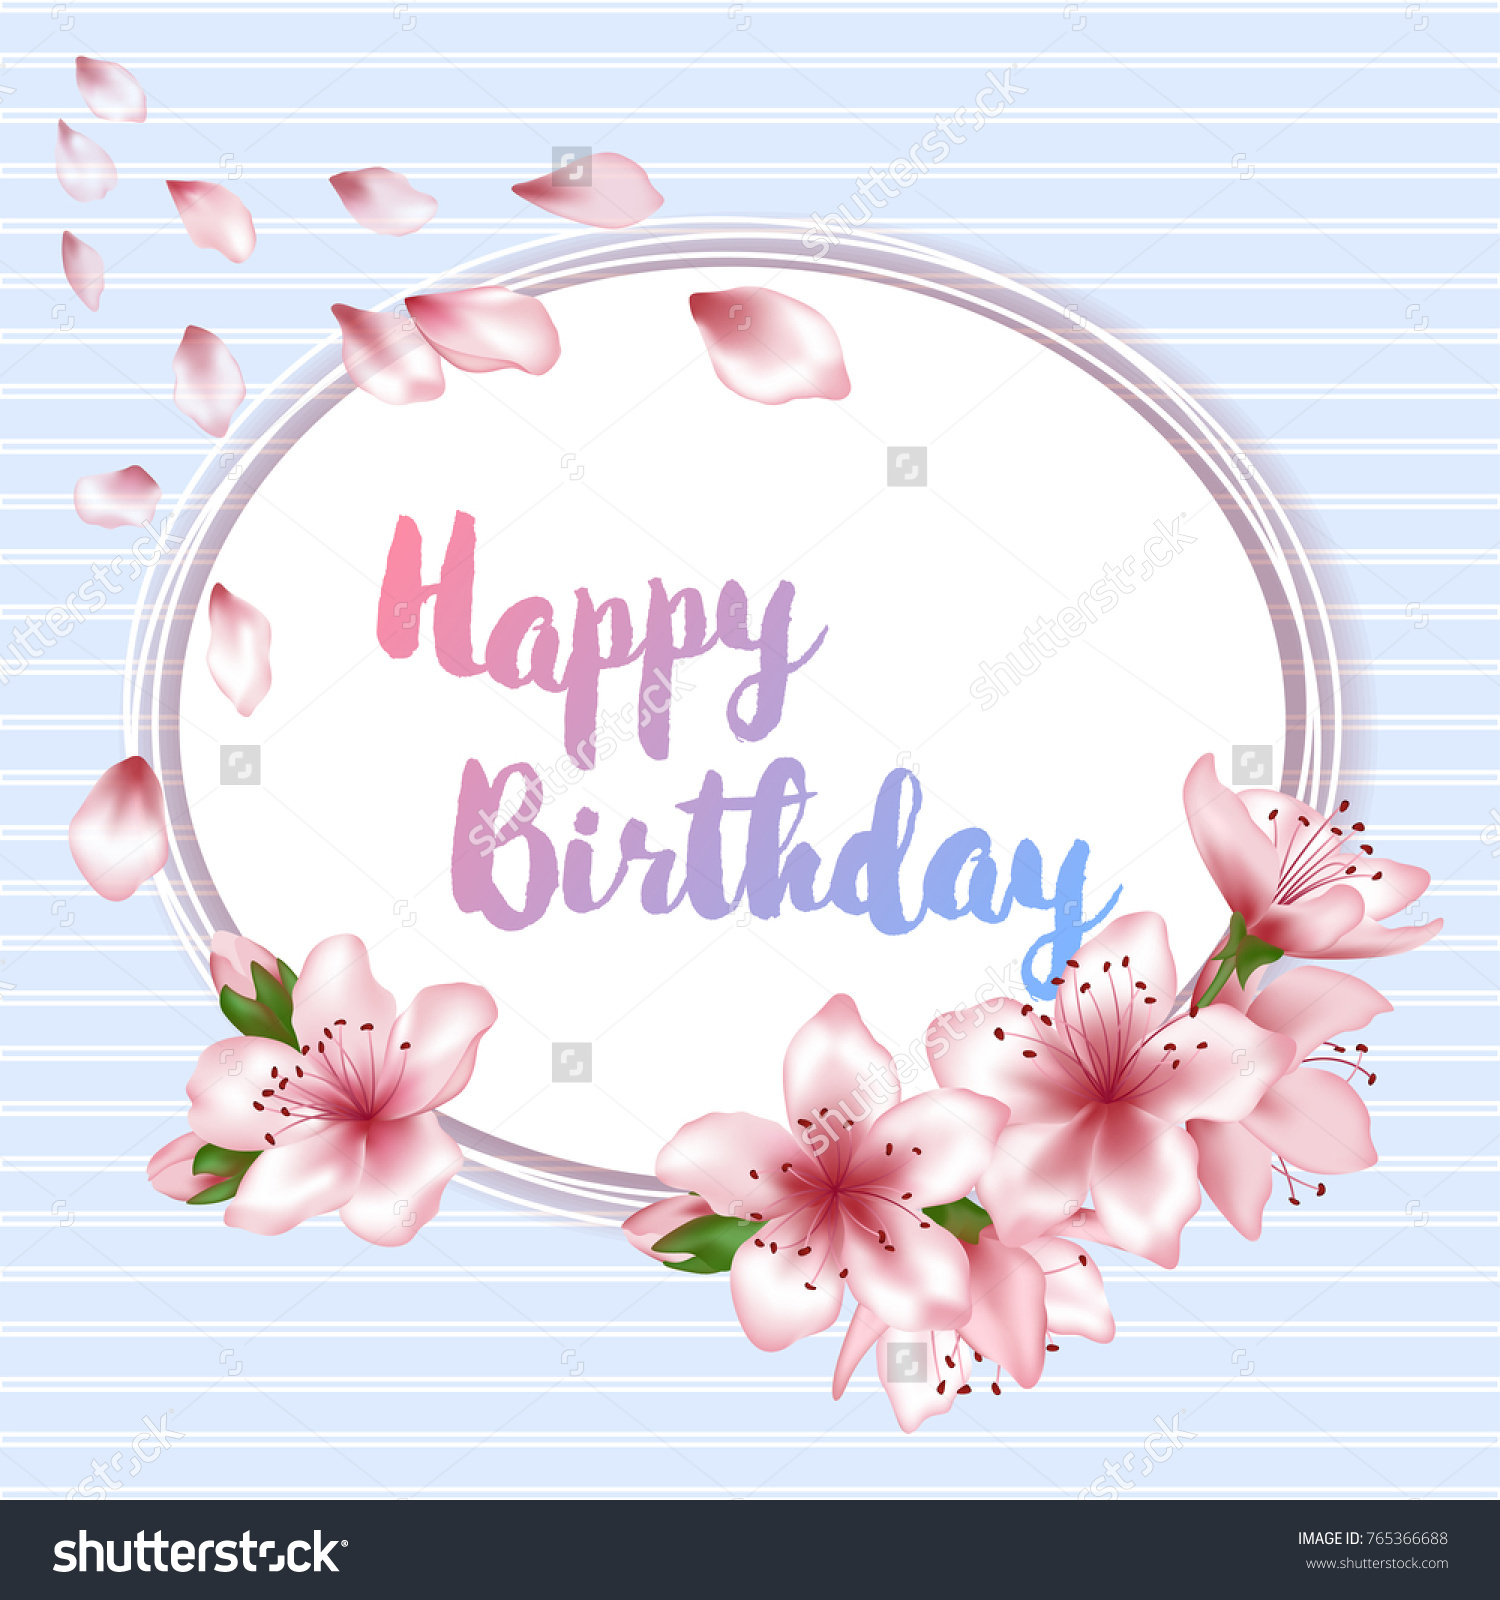 Happy Birthday Flowers Blossom Greeting Card Stock Illustration